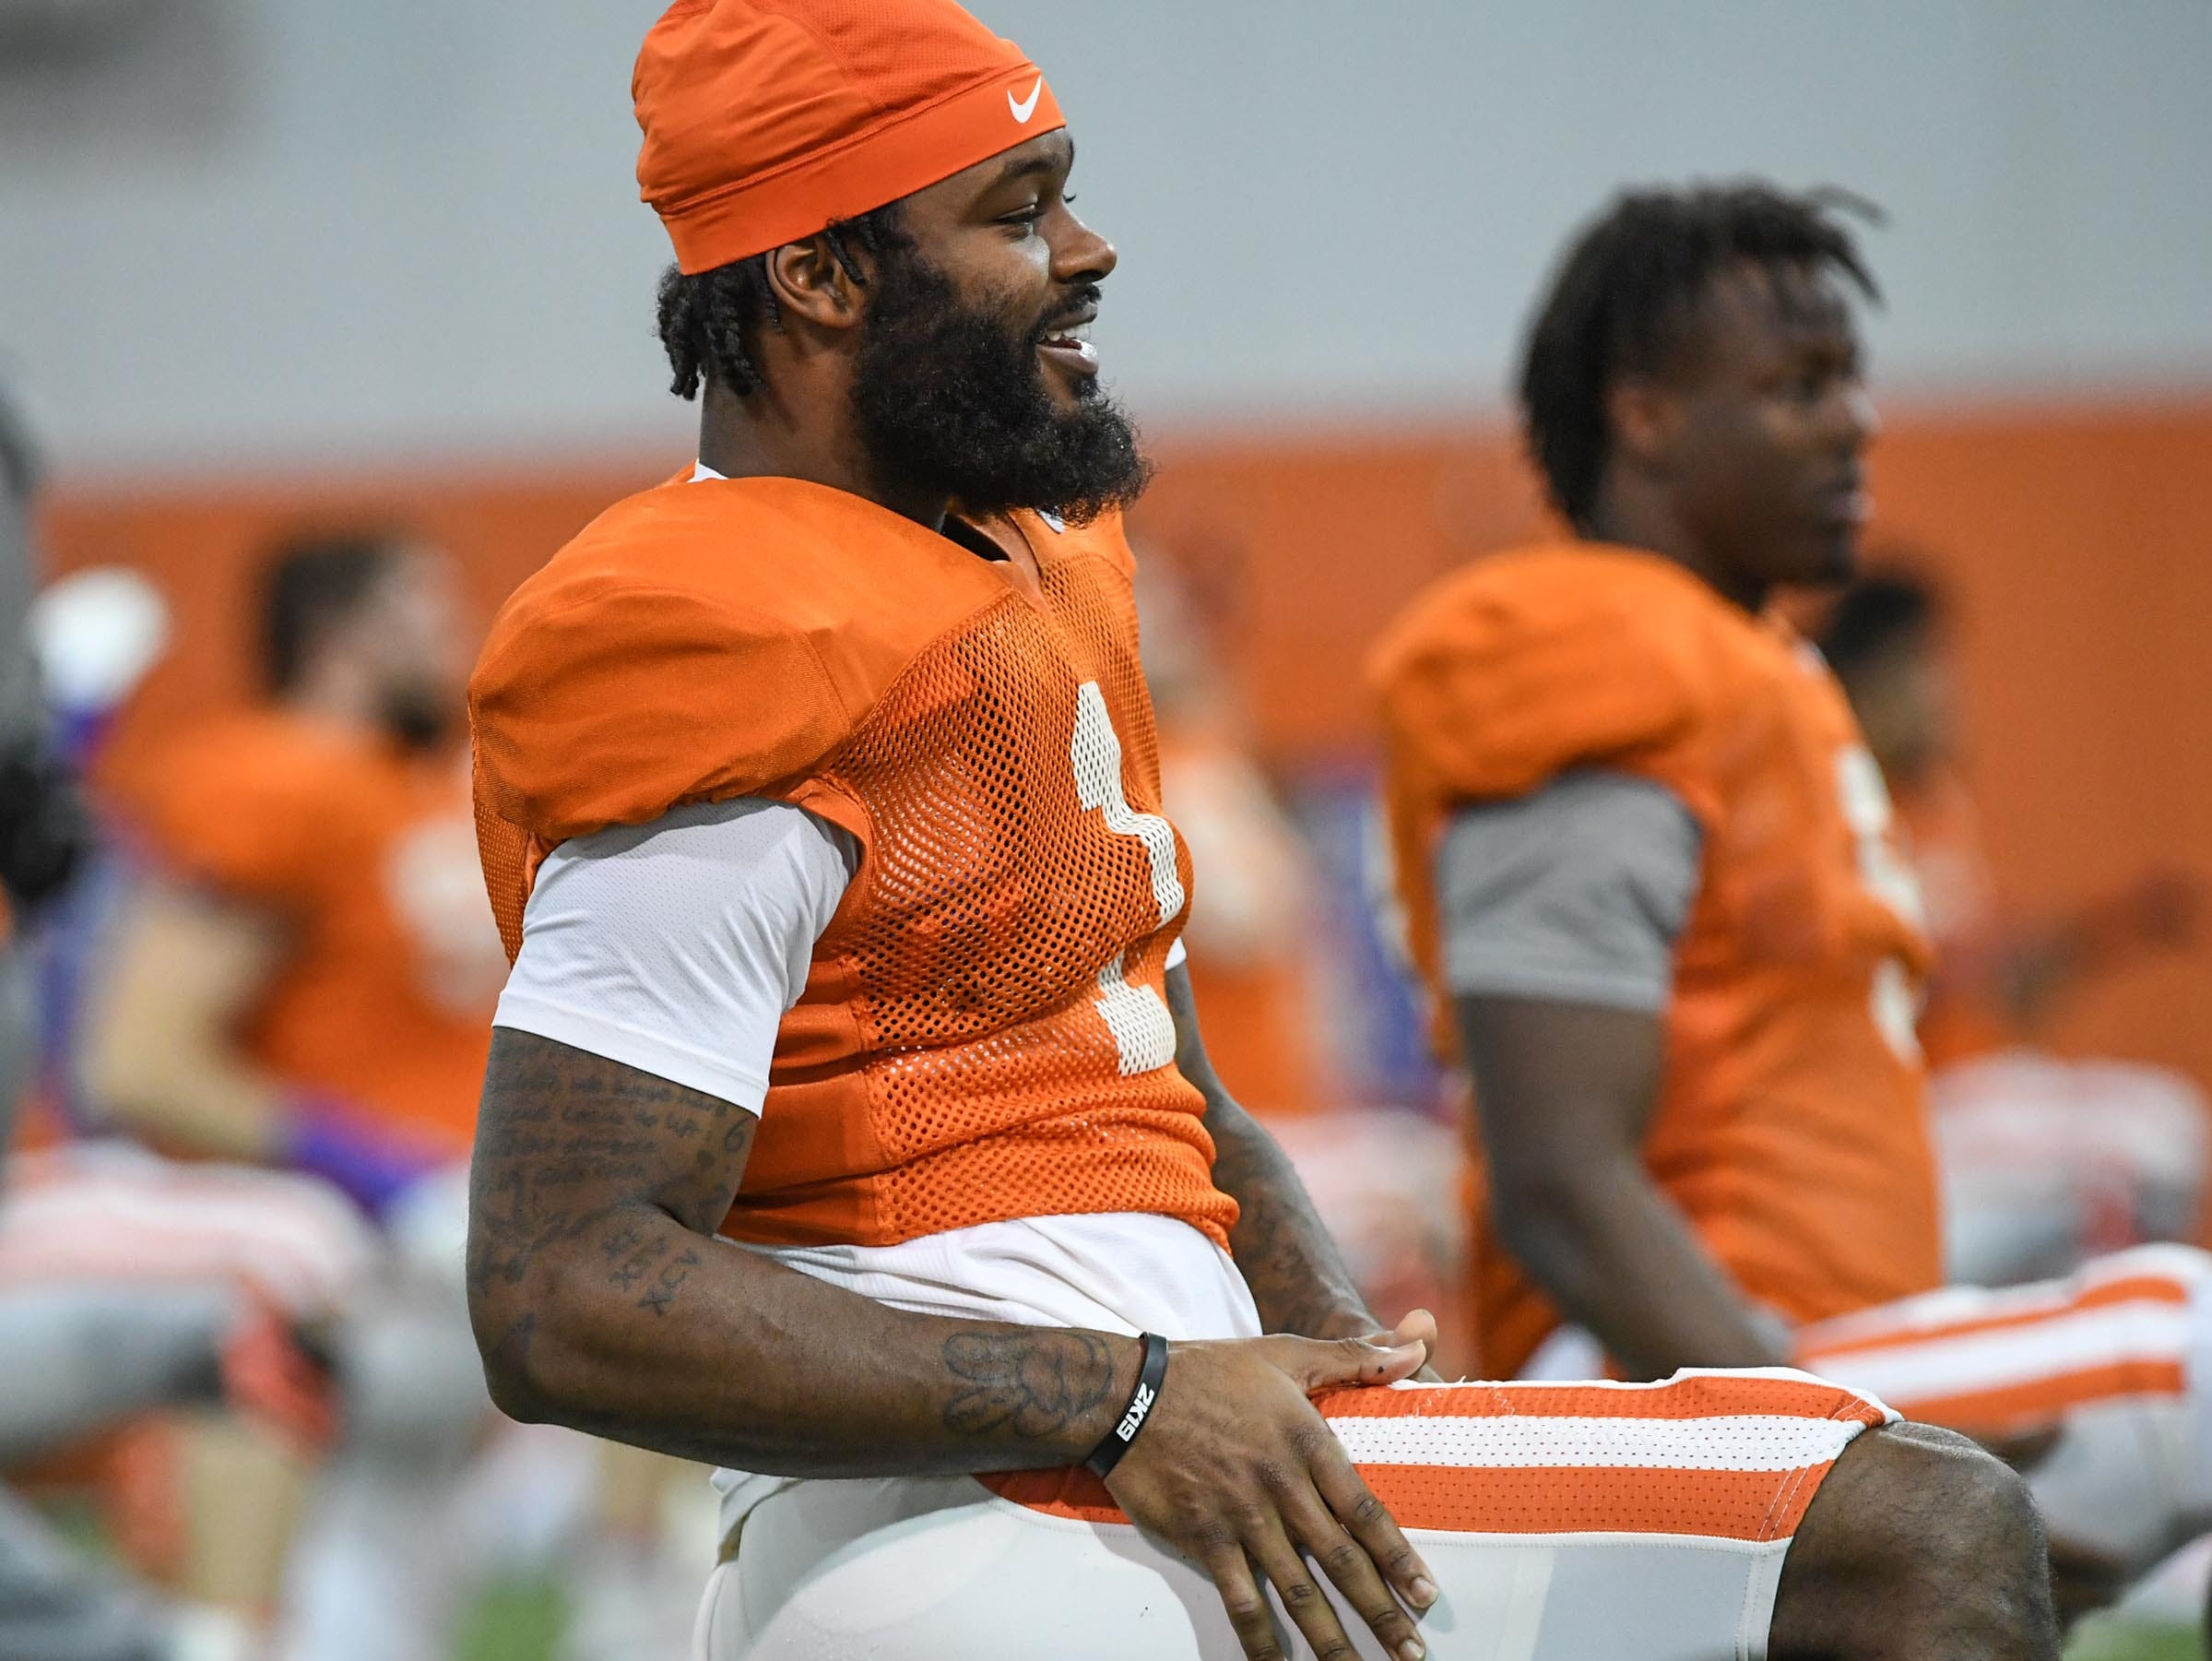 Clemson wide receiver Trevion Thompson (1) stretches during practice for the Cotton Bowl at the Poe Indoor Facility in Clemson Friday, December 14, 2018.